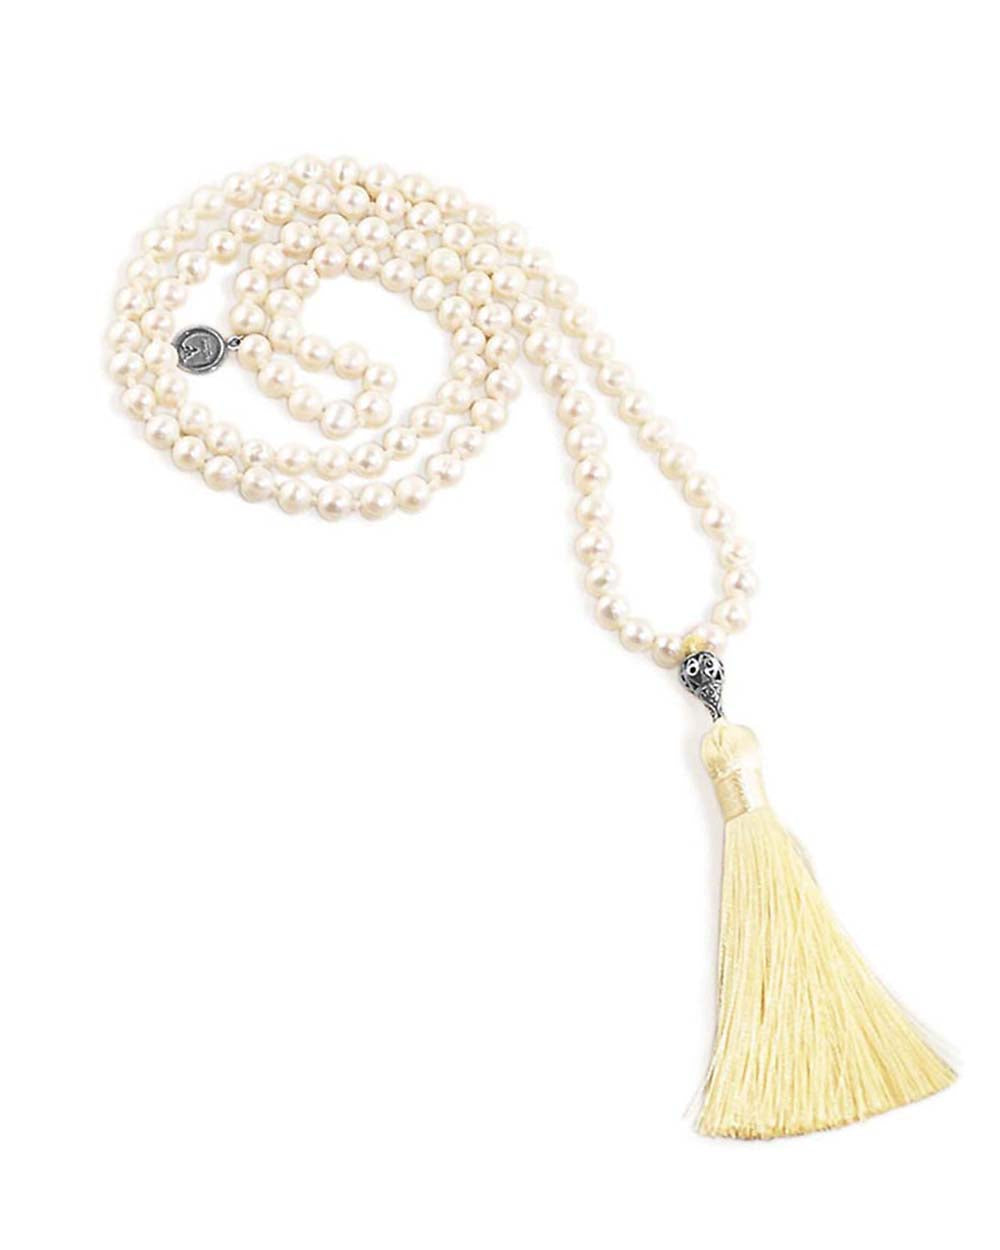 Intuitive Reflections Mala White Pearls